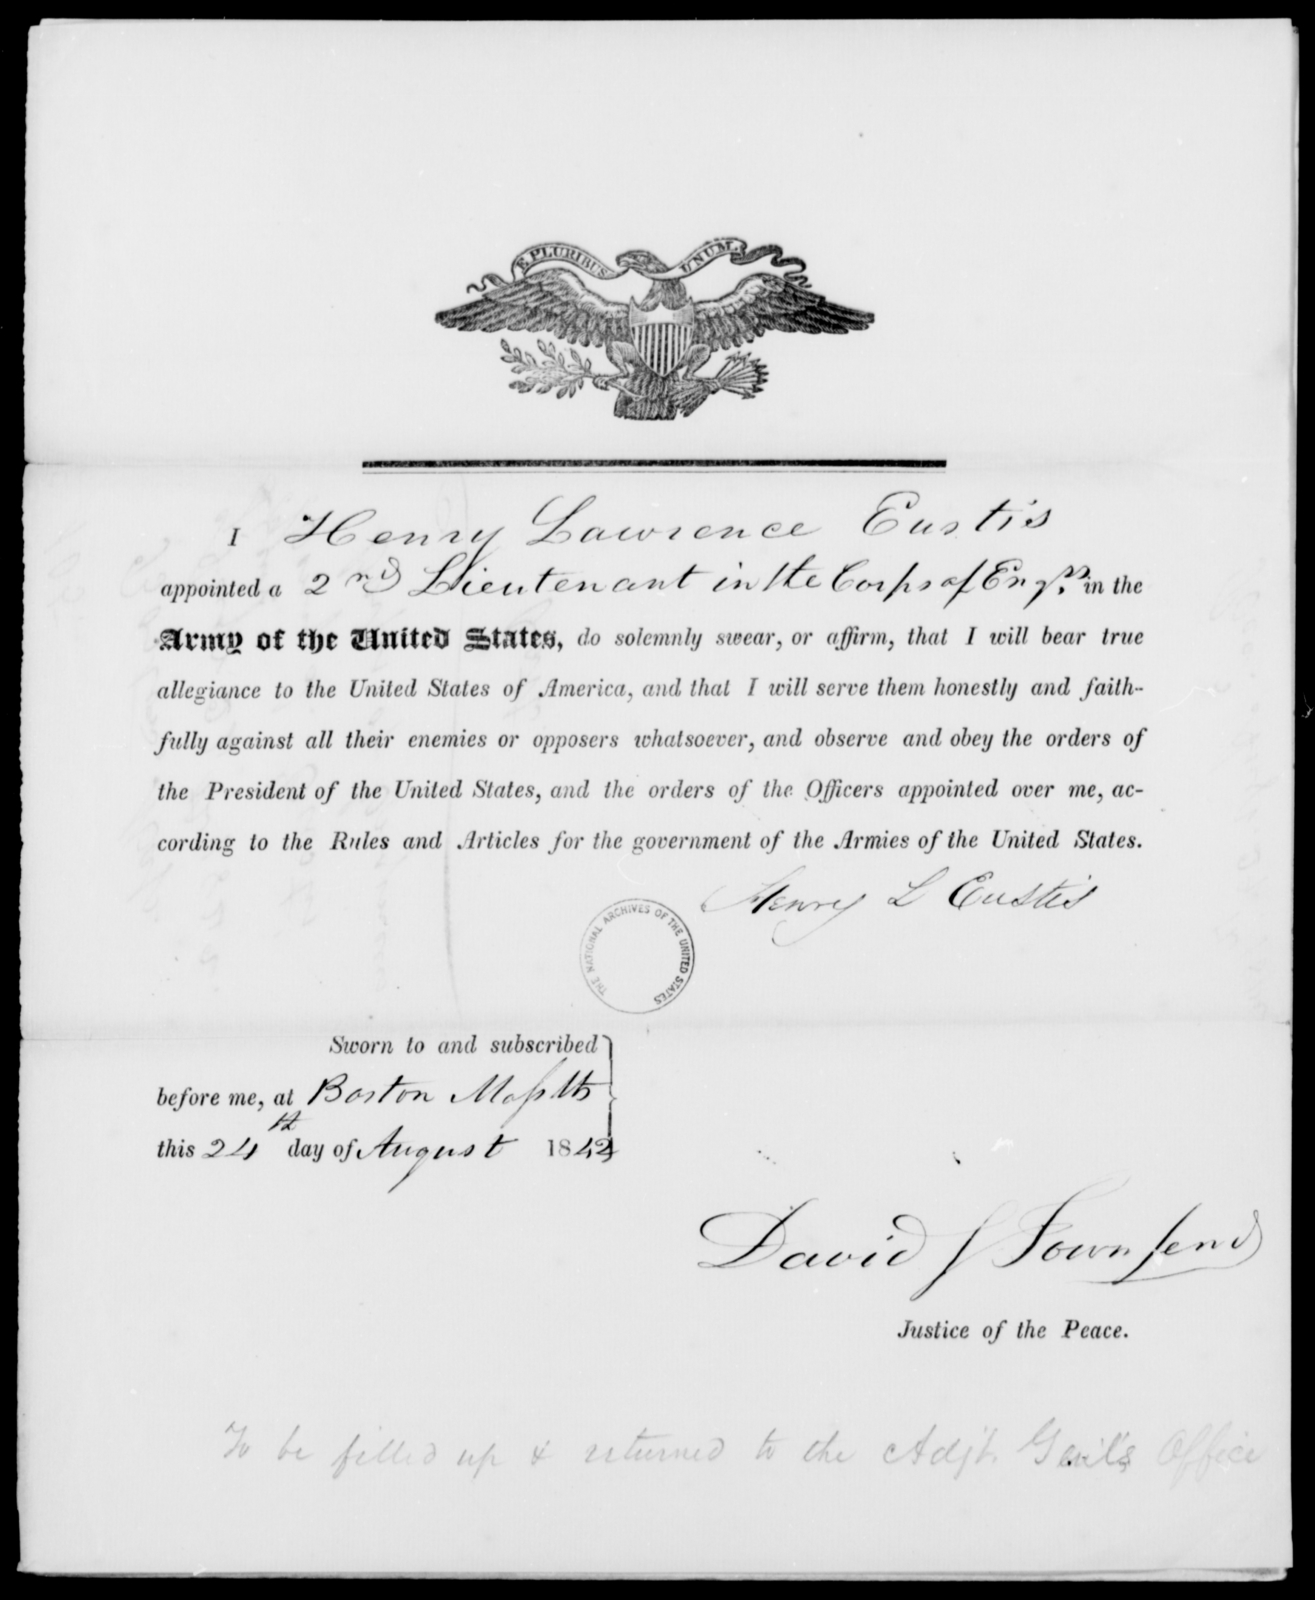 Eustis, Henry L - State: [Blank] - Year: 1842 - File Number: E105